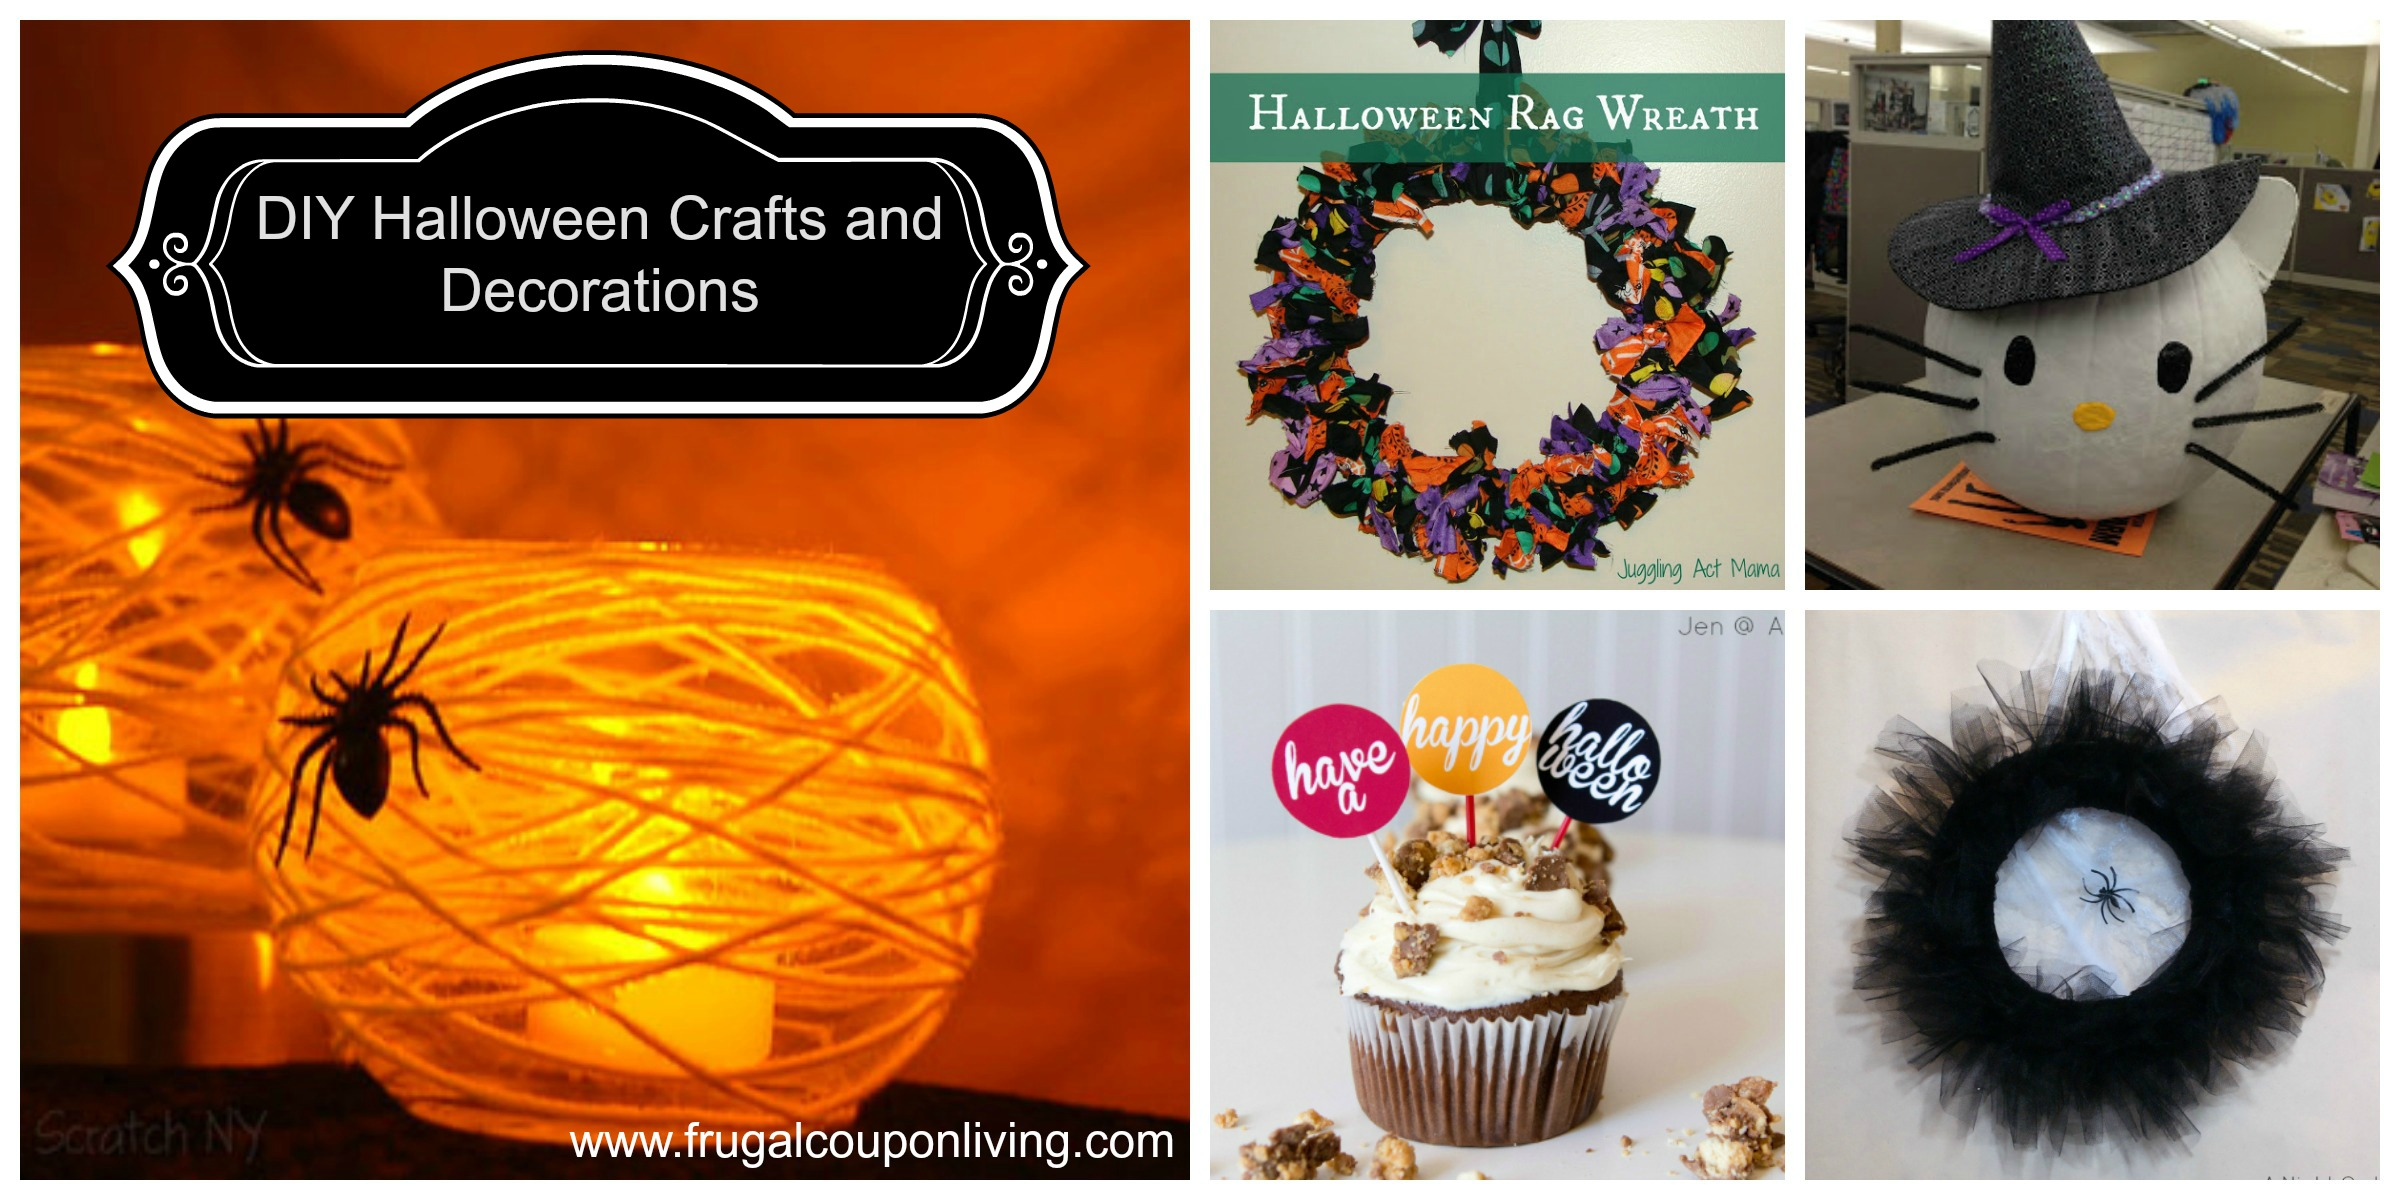 diy halloween crafts and decorations frugal coupon living halloween craft pinterest